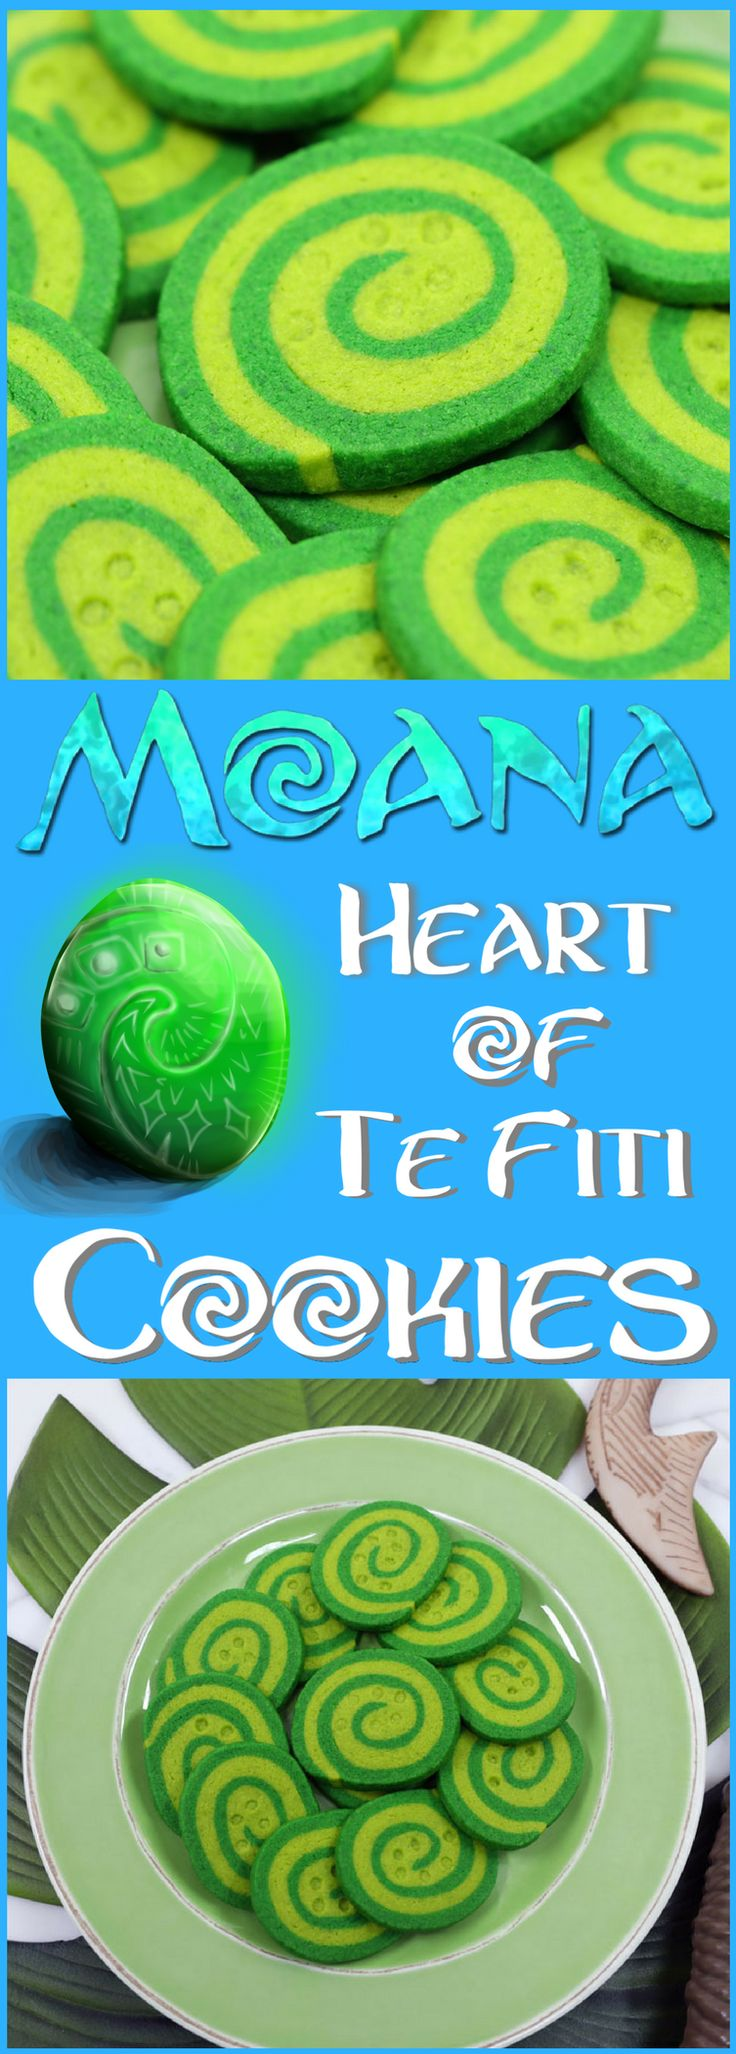 Moana Heart of Te Fiti Cookies